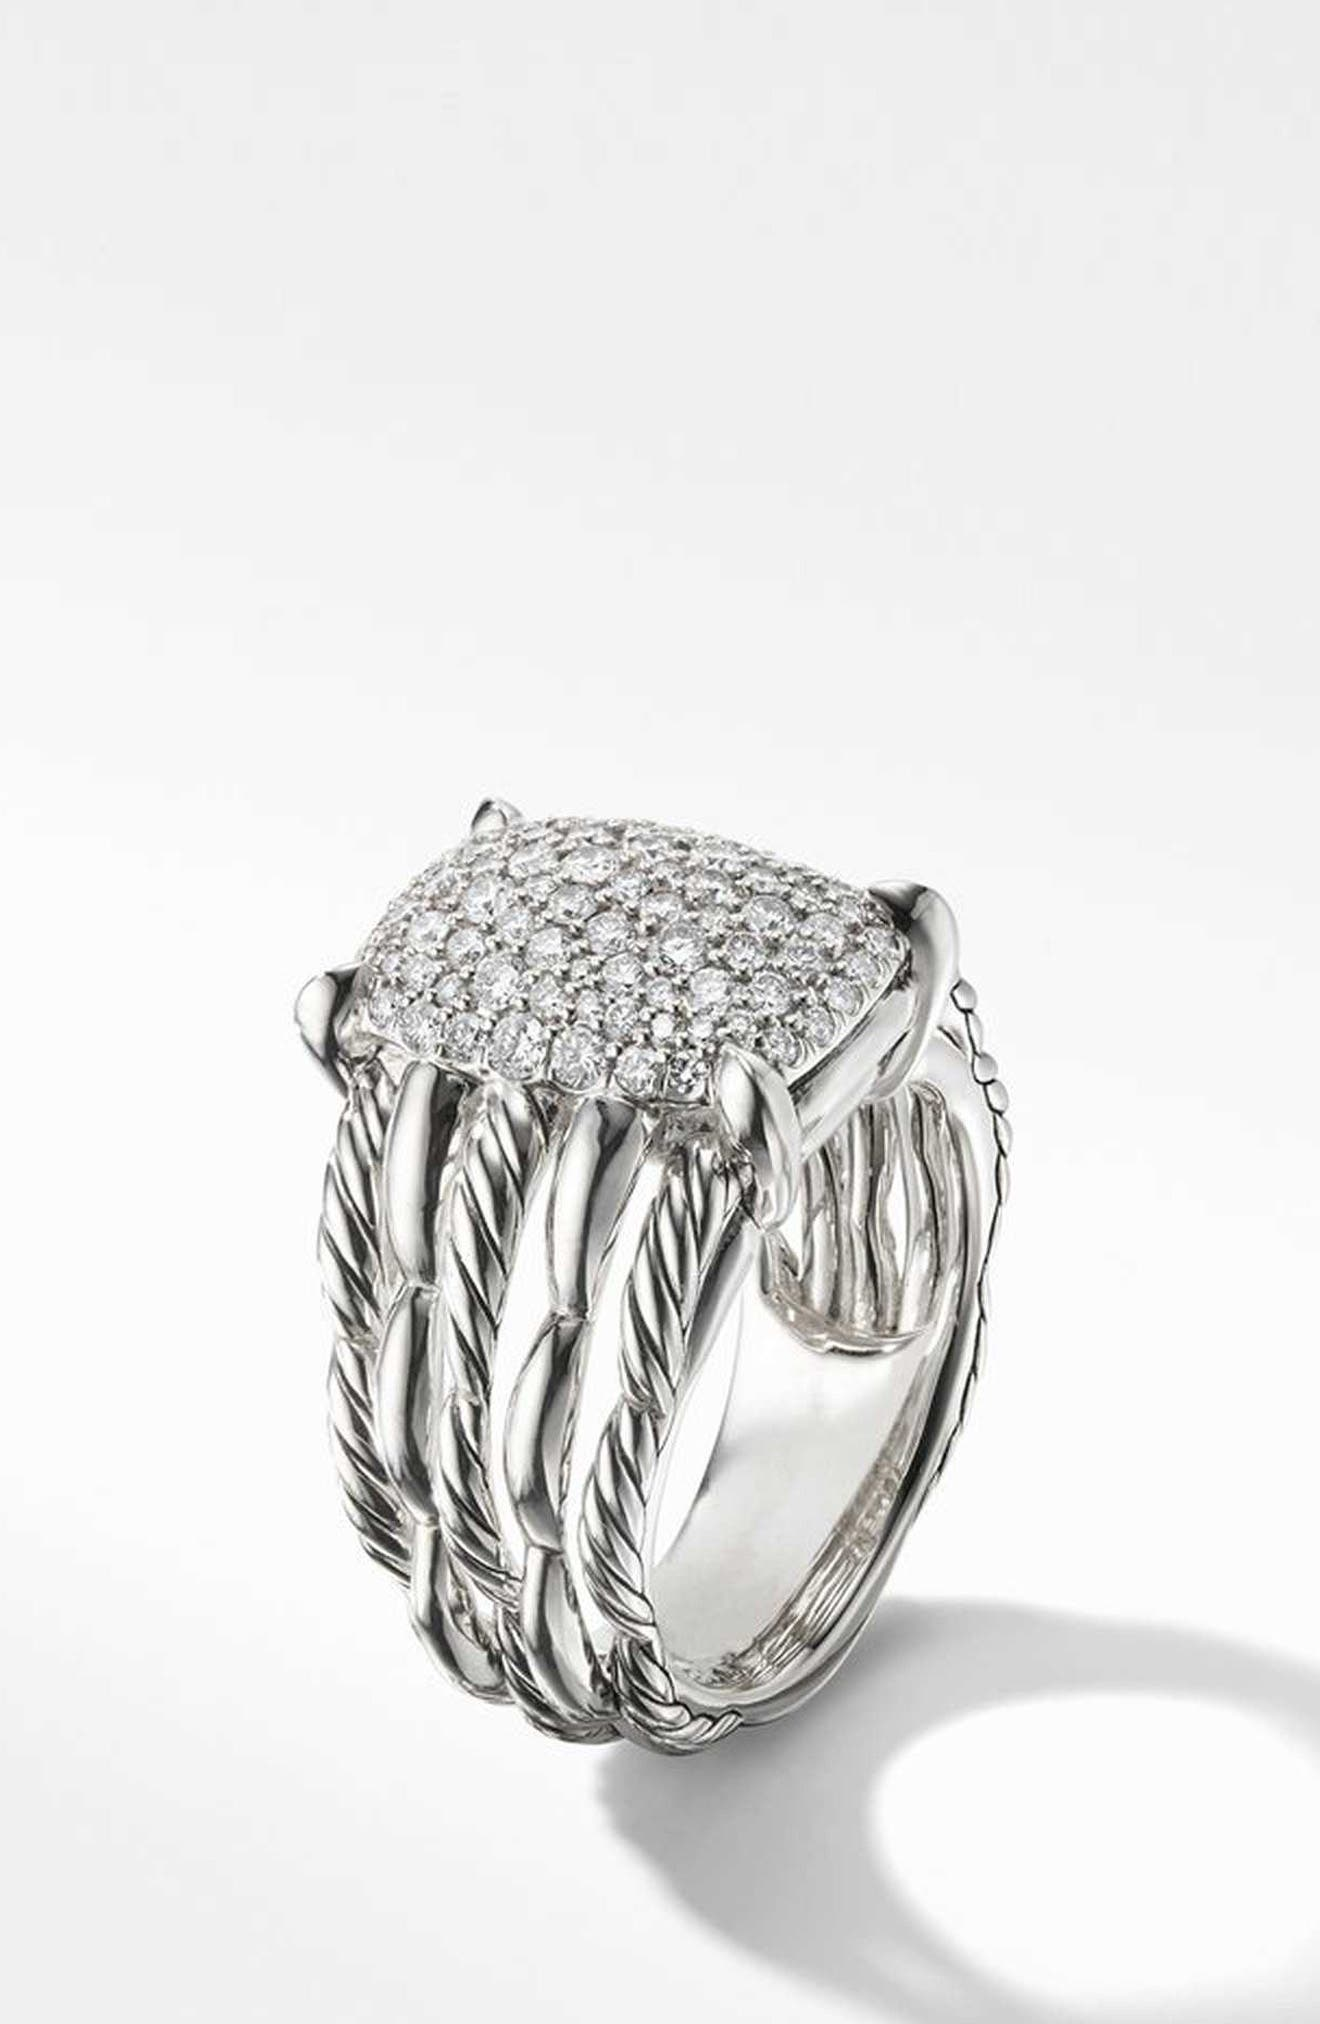 Tides Statement Ring with Pavé Plate,                             Alternate thumbnail 2, color,                             STERLING SILVER/ DIAMOND